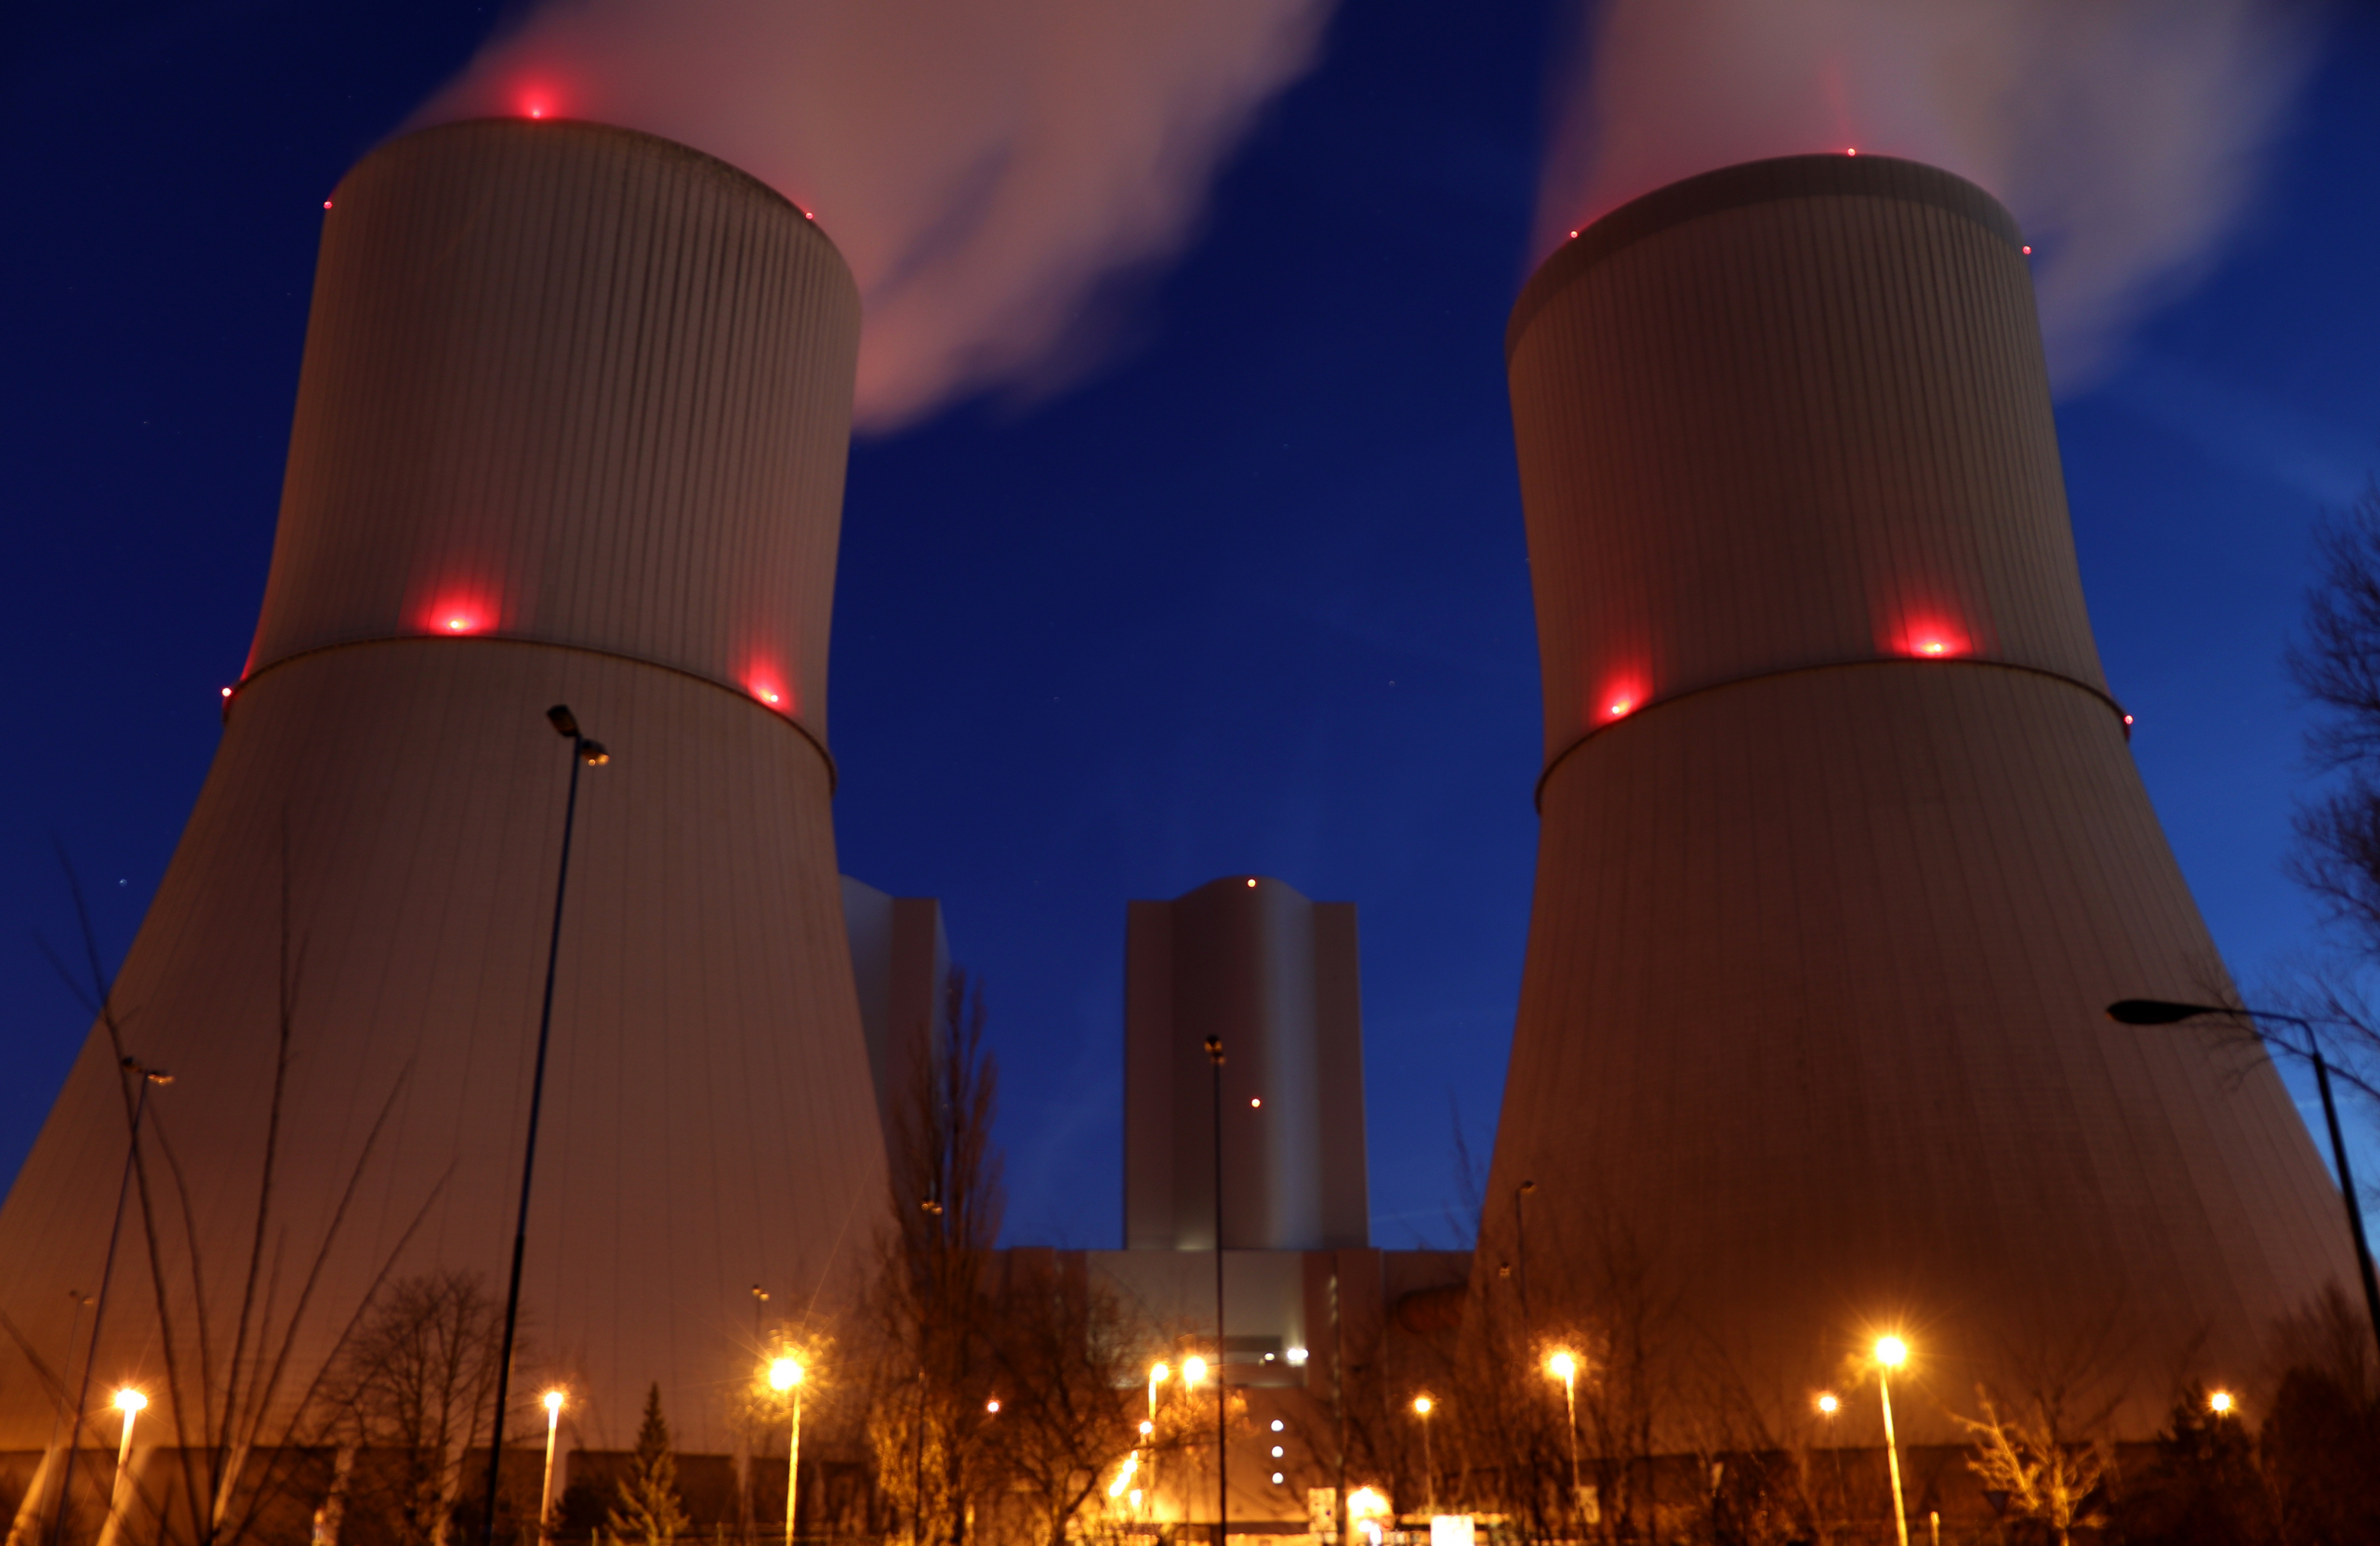 This image of nuclear power plant cooling towers at night complements the text of the articles which tells of Imperia Engineering performing code reconciliation on the piping of a nuclear plant's Flow Accelerated Corrosion (FAC) program resulting in significant cost saving to the plant.